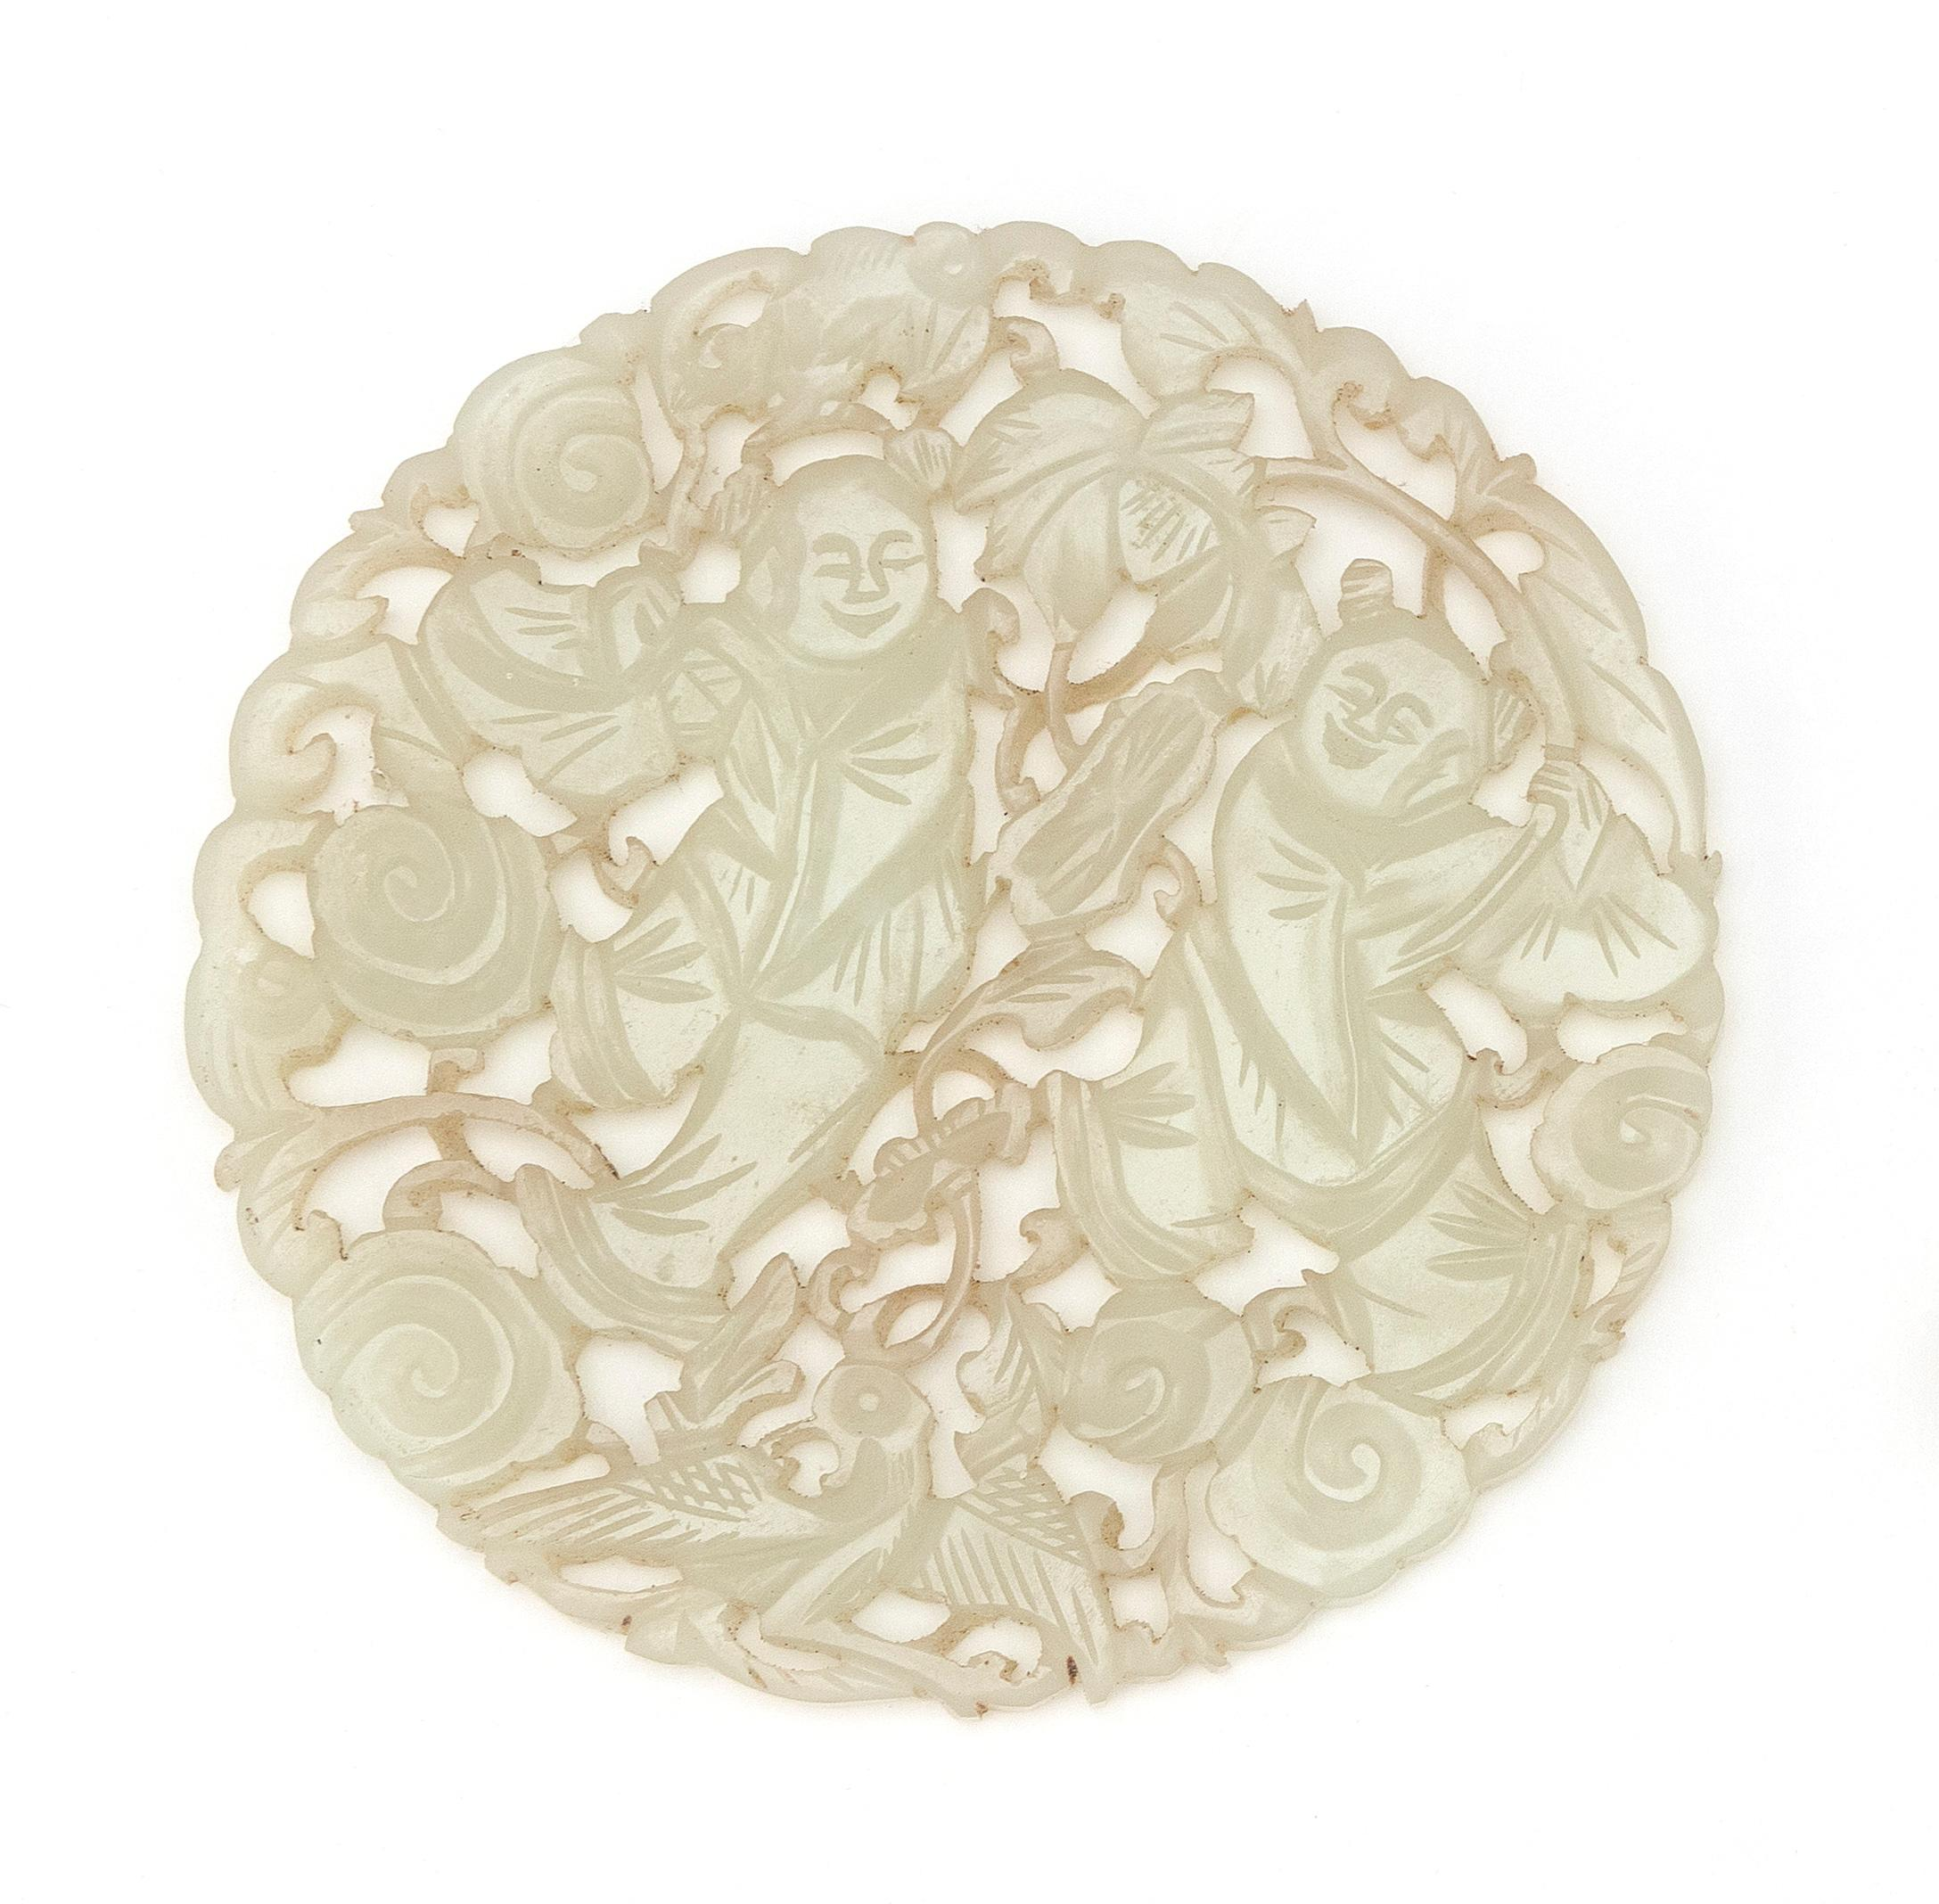 """CHINESE OPENWORK-CARVED CELADON JADE PLAQUE Depicts children with a bat and phoenix in a ruyi-filled landscape. Diameter 3.25""""."""